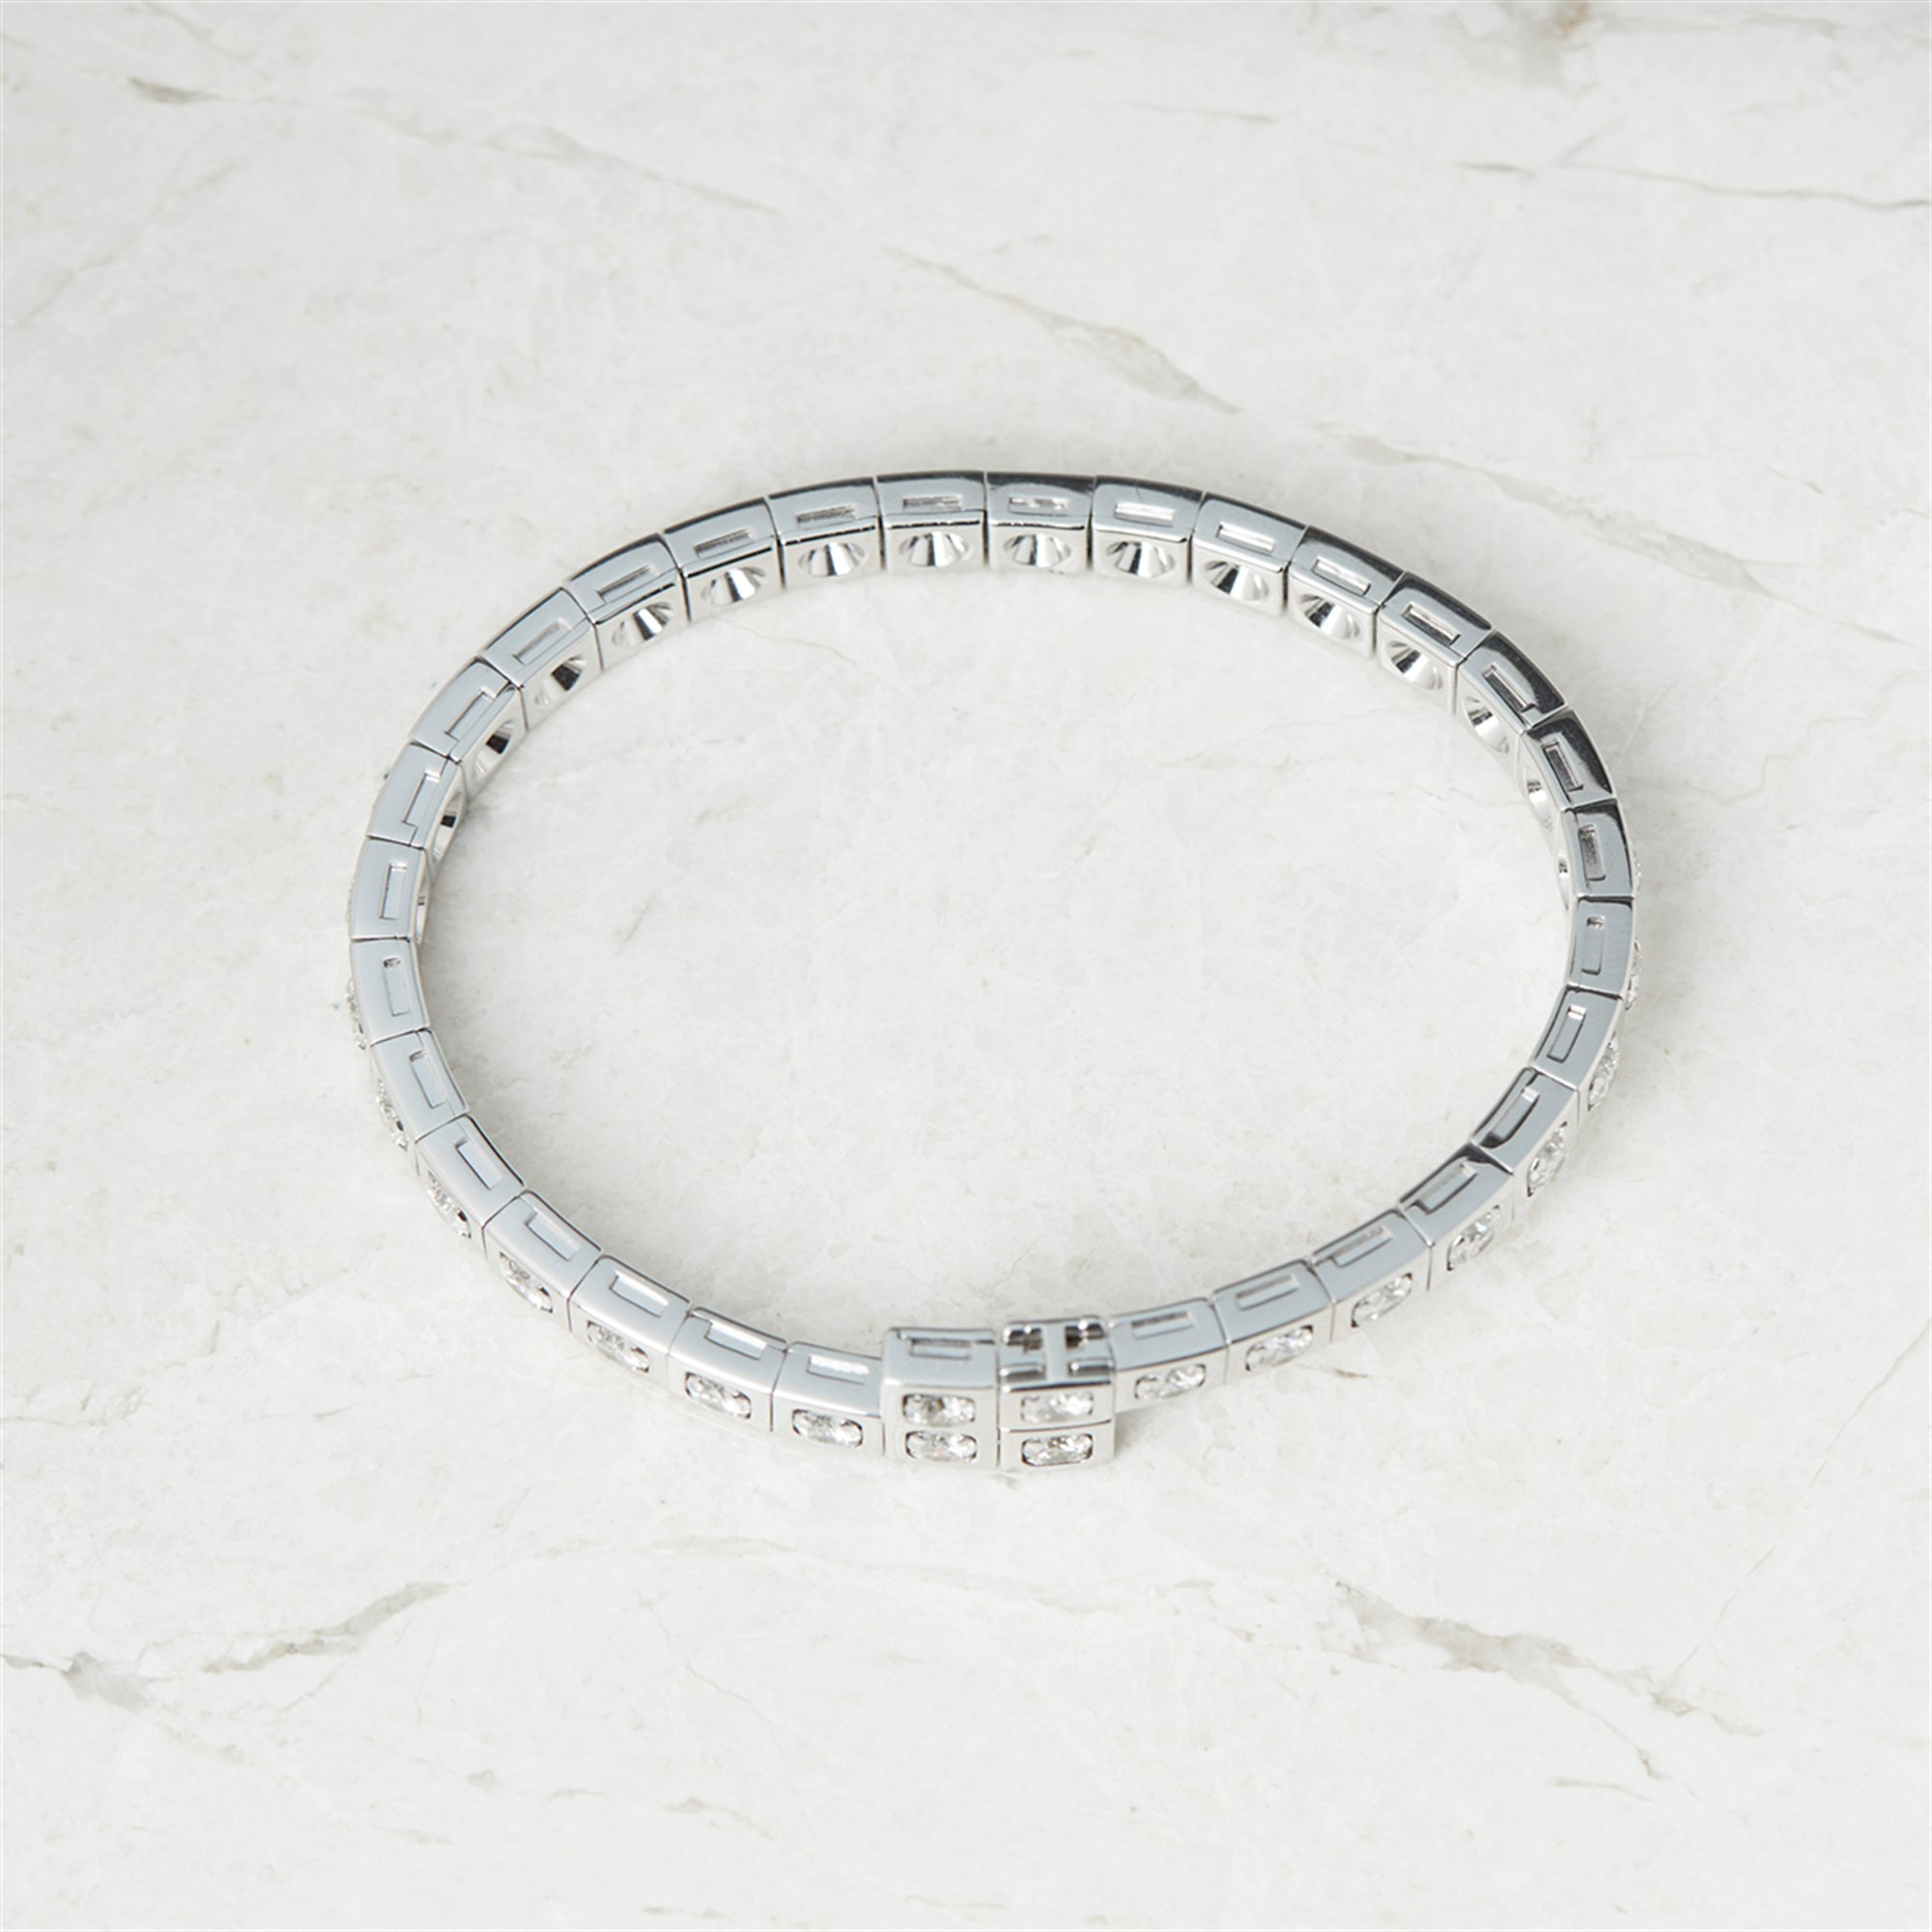 Cartier 18k White Gold Diamond Tectonique Bracelet